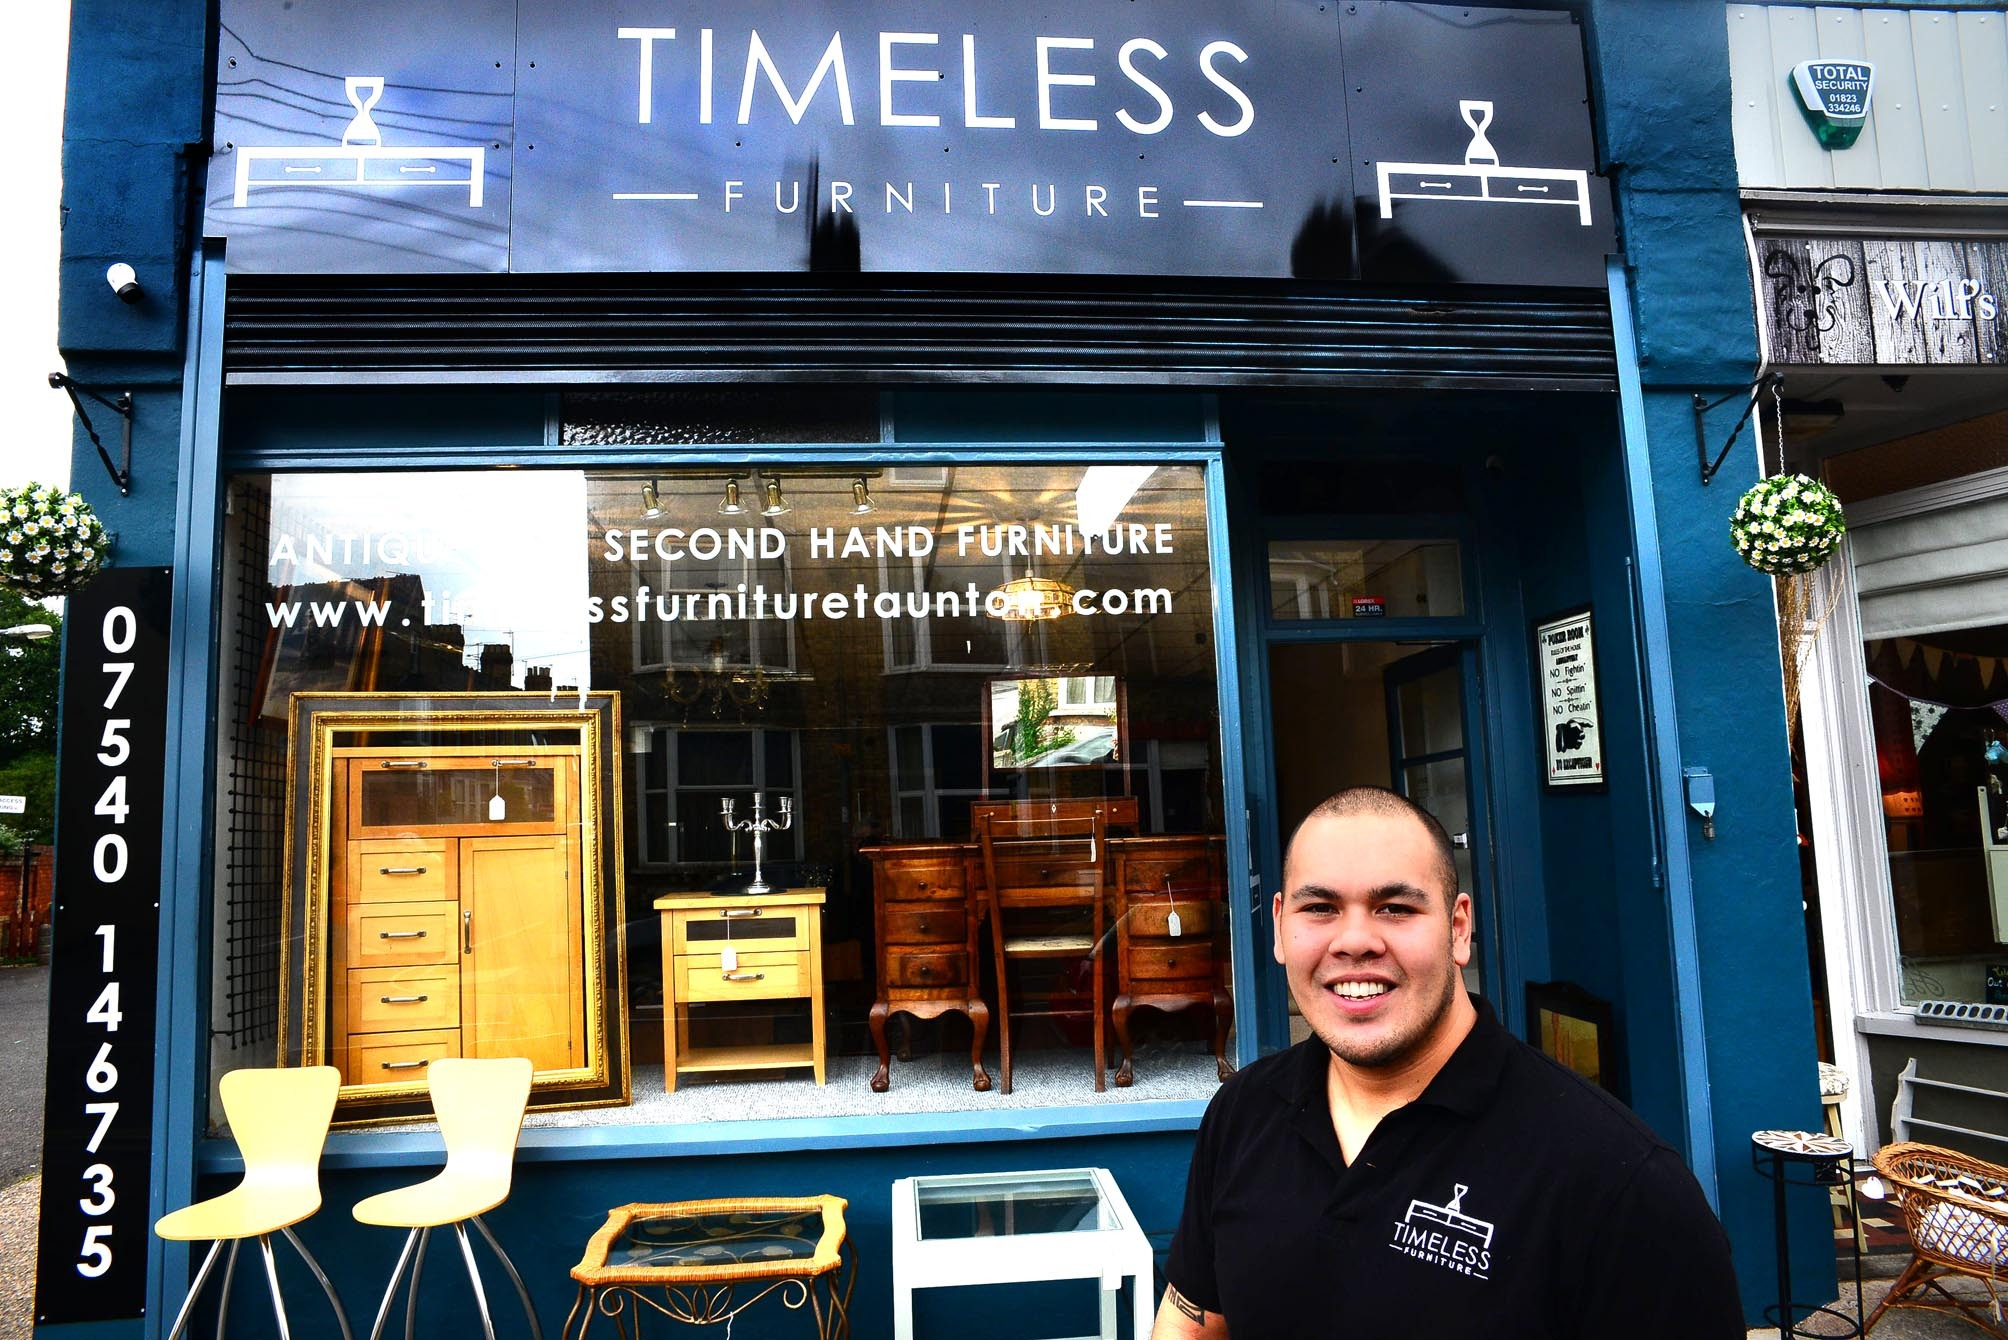 Timeless Furniture, 66 Cheddon Rd, Taunton TA2 7DP, UK.